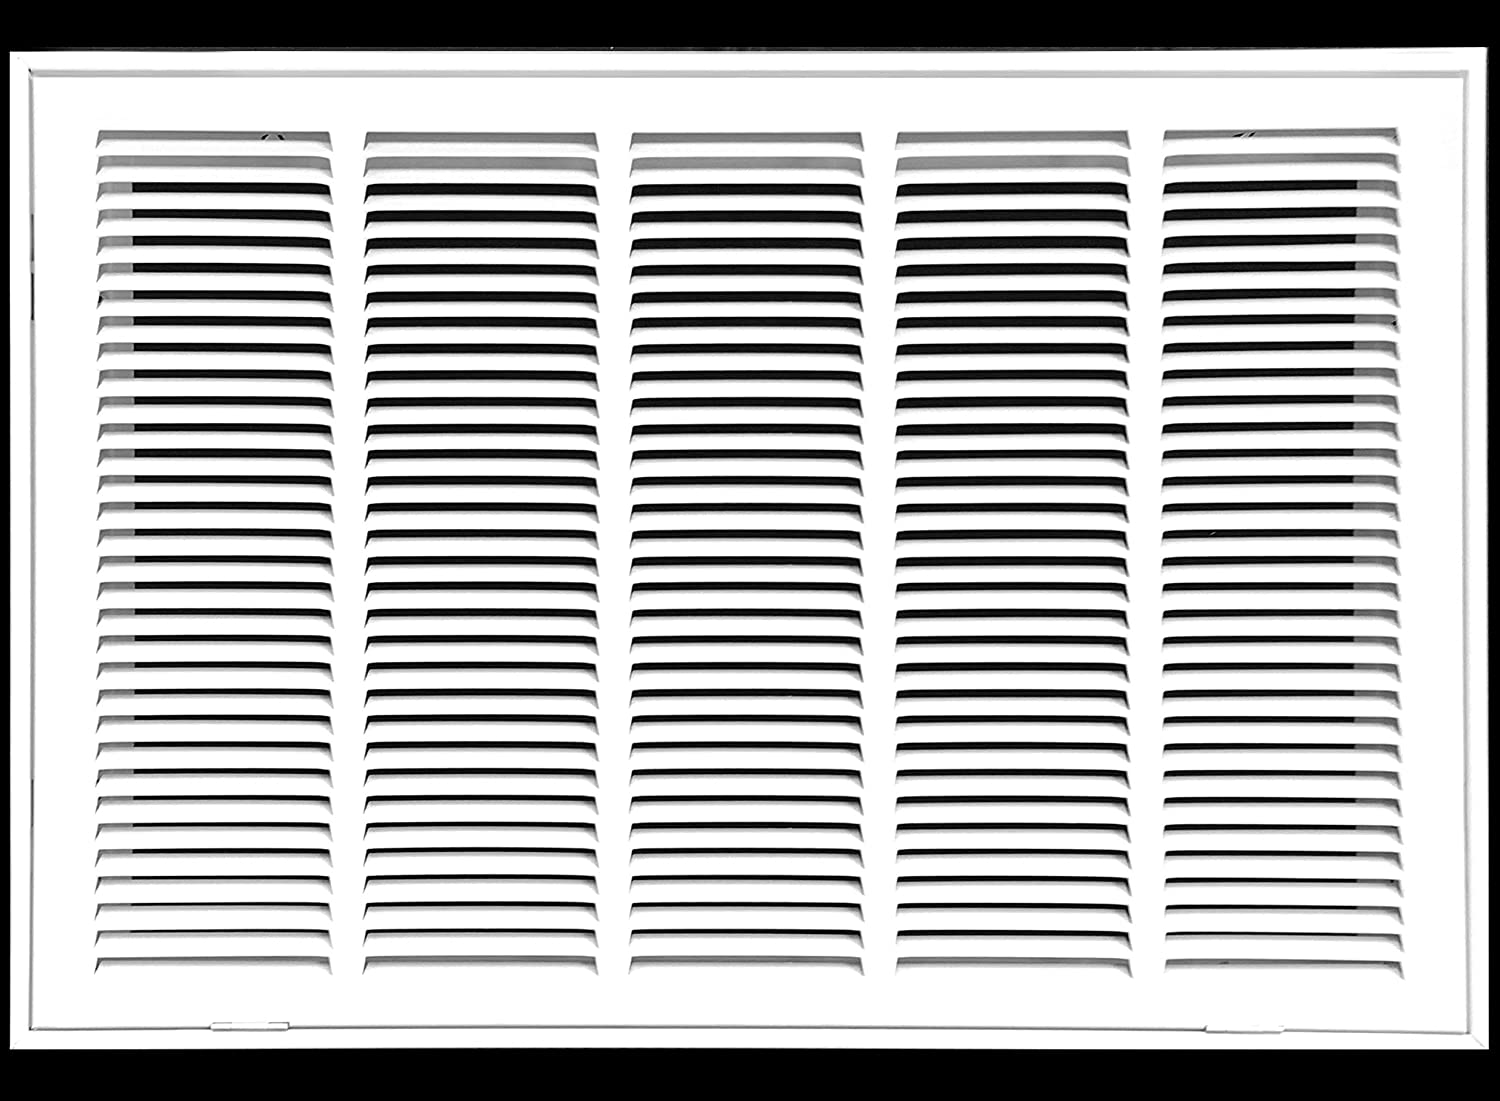 """25"""" X 16 Steel Return Air Filter Grille for 1"""" Filter - Fixed Hinged - Ceiling Recommended - HVAC Duct Cover - Flat Stamped Face - White [Outer Dimensions: 27.5 X 17.75]"""